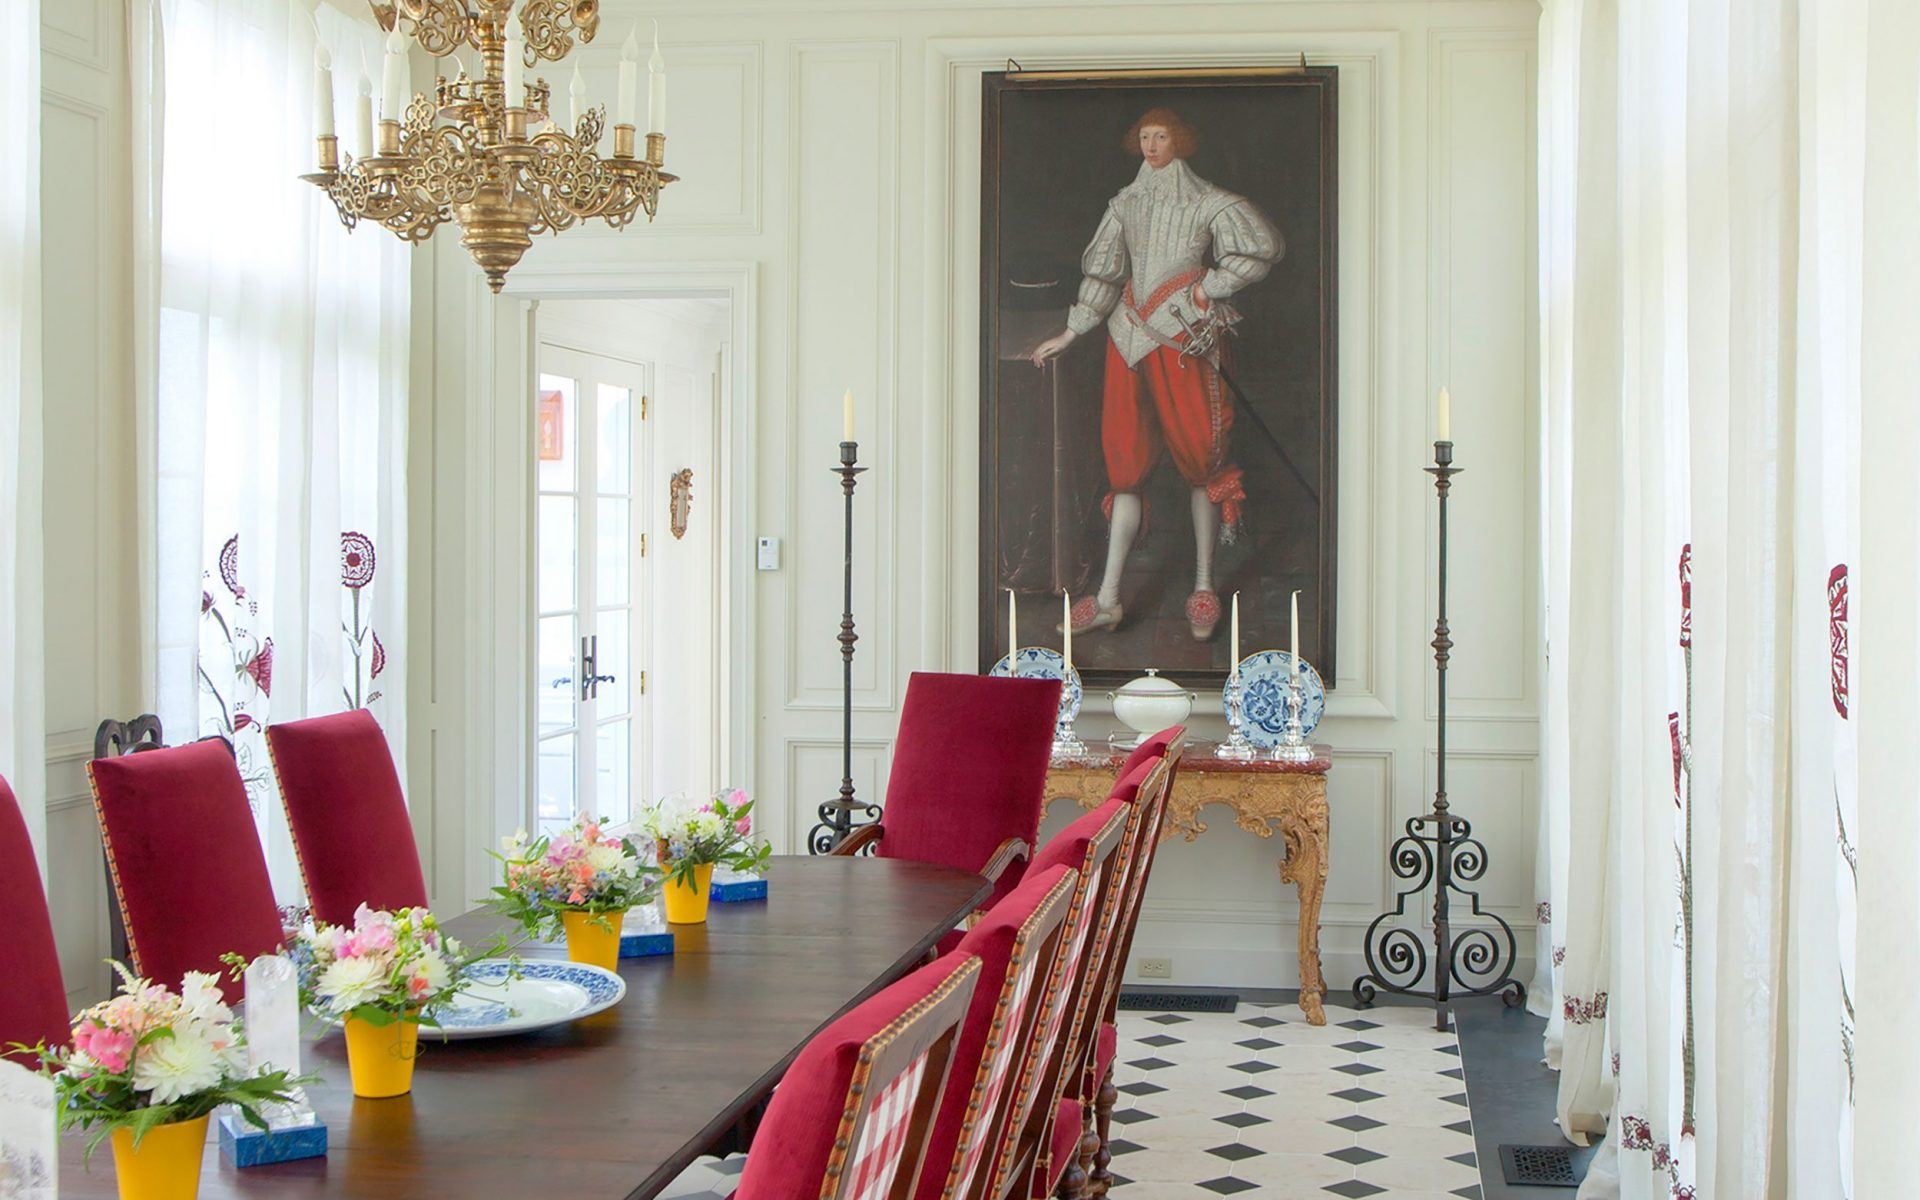 A Gilbert Jackson portrait in the Connecticut home of Robert Couturier.